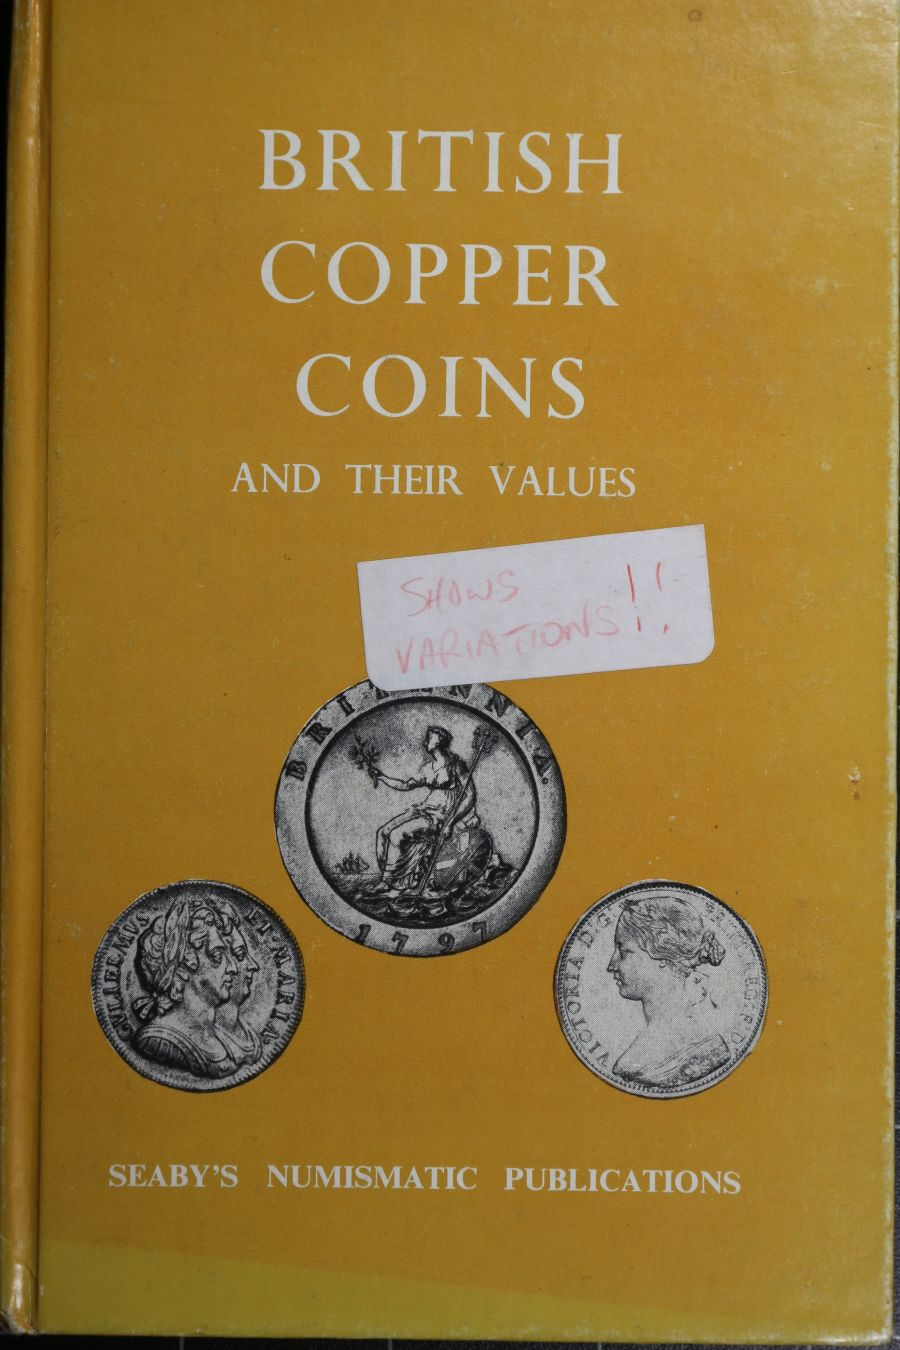 British copper coins and their values, P. J. Seaby